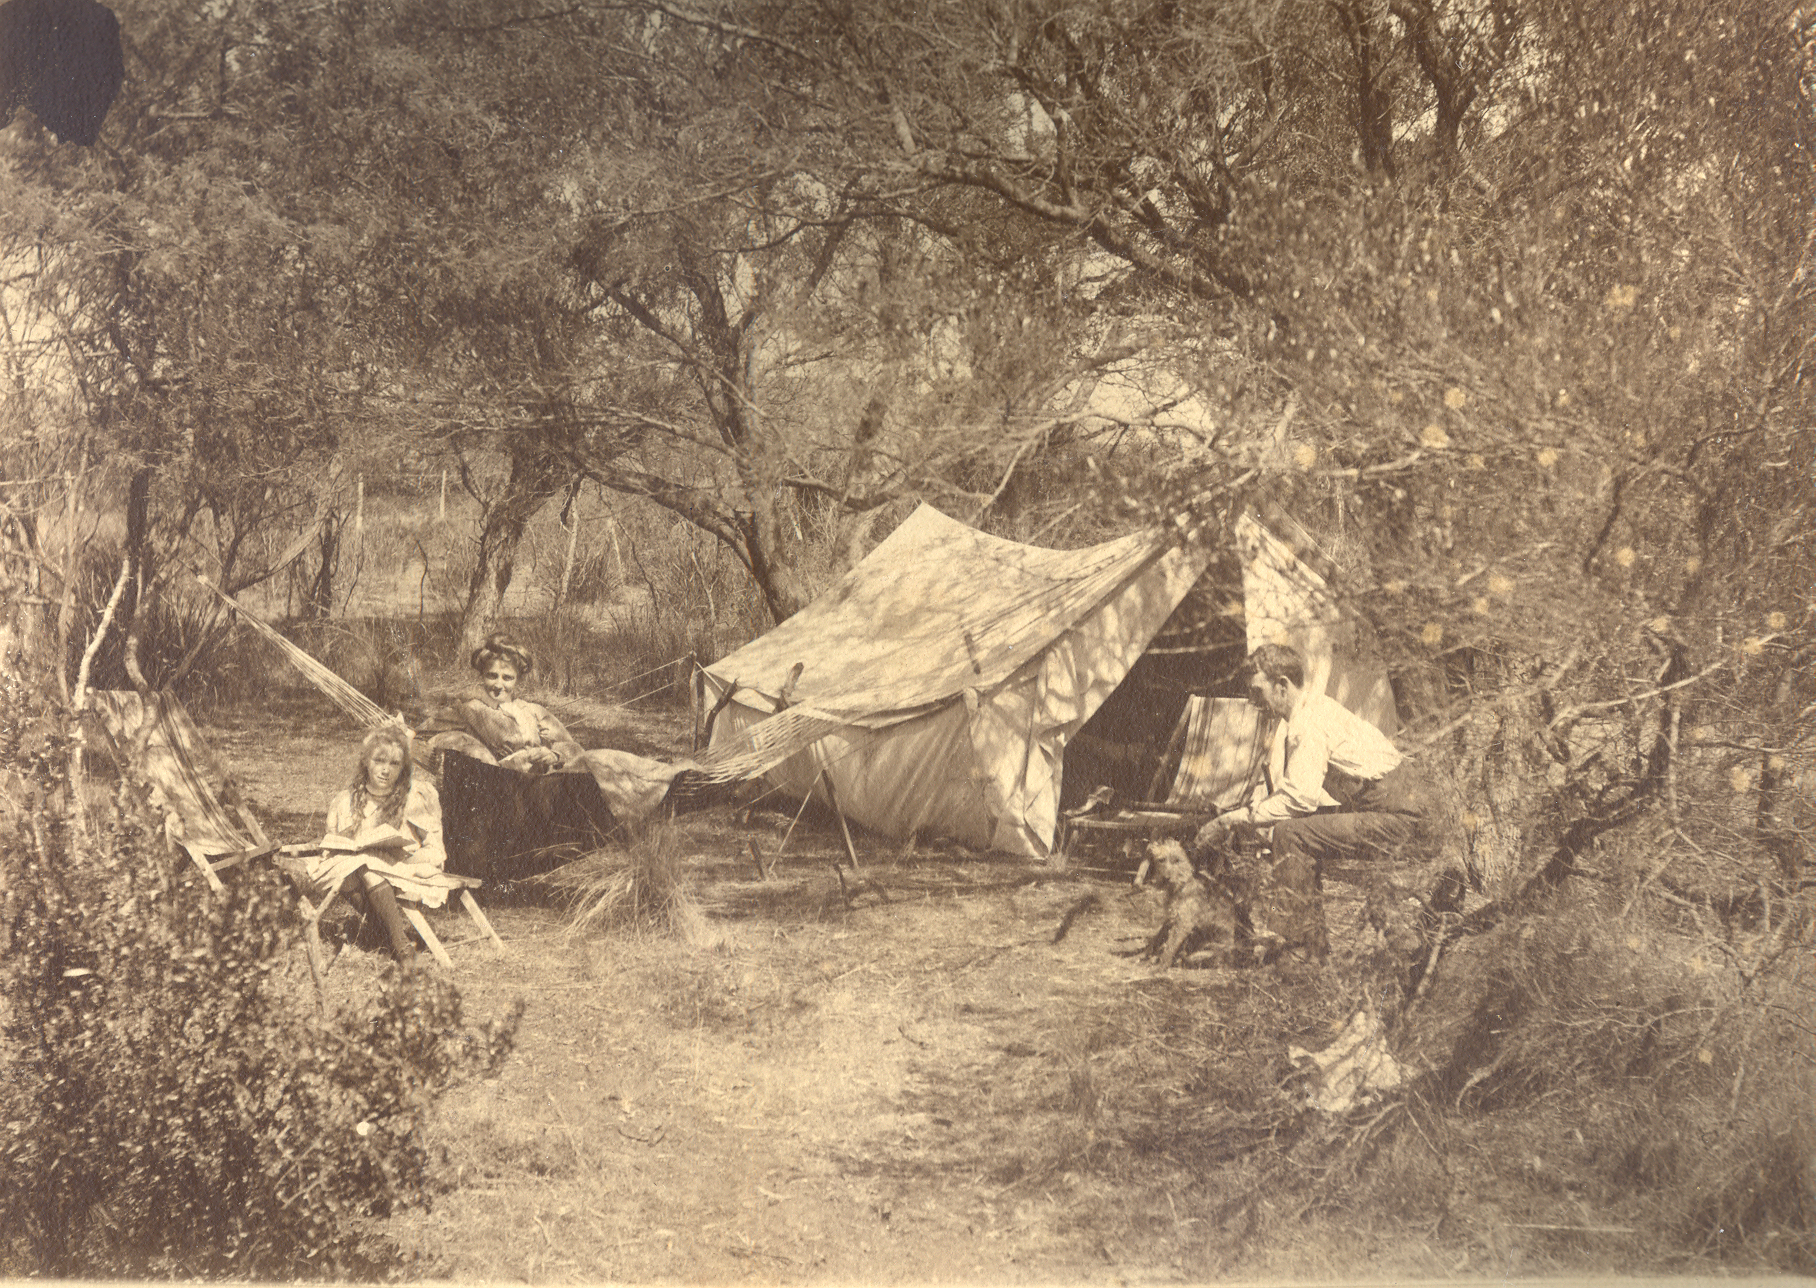 Maydena Australia  City pictures : ... and Gilbert Rowntree camping at 'Maydena', Sandford, Tasmania, c. 1910